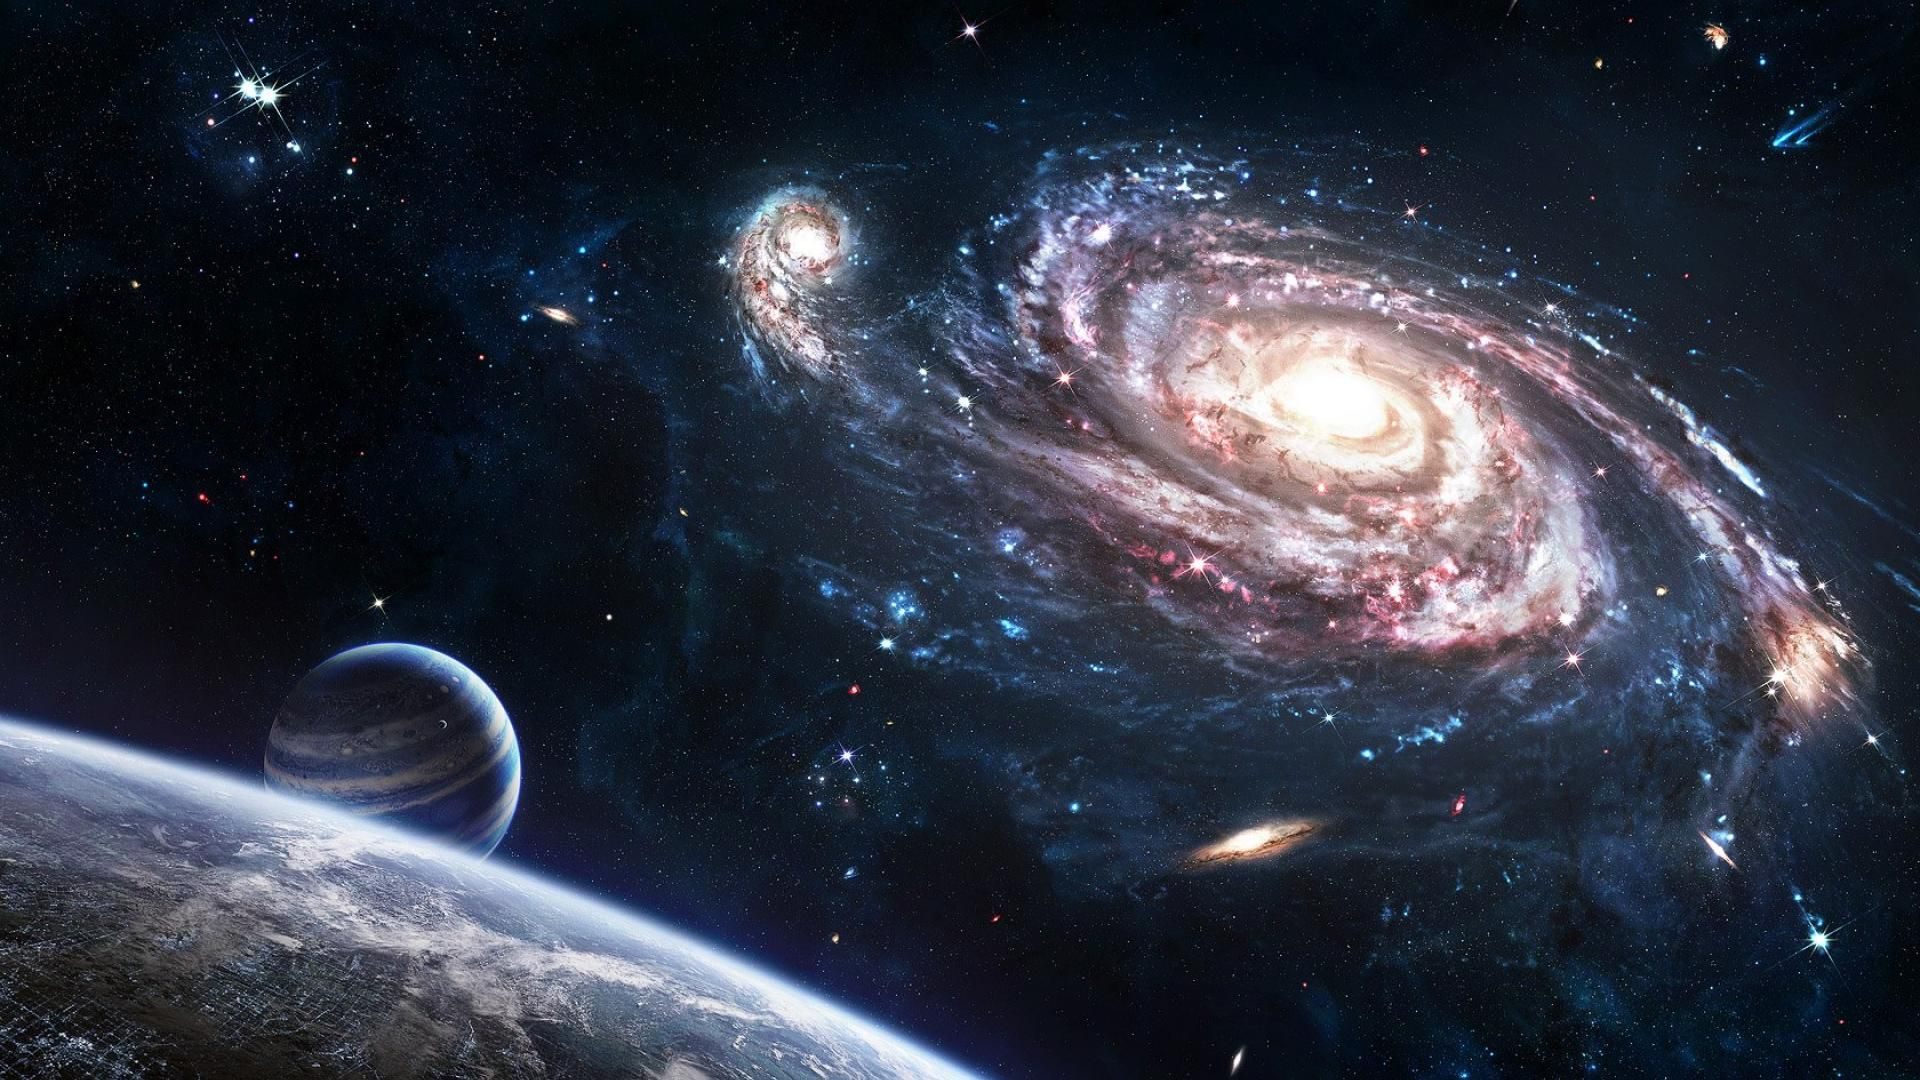 hd wallpapers space universe free download